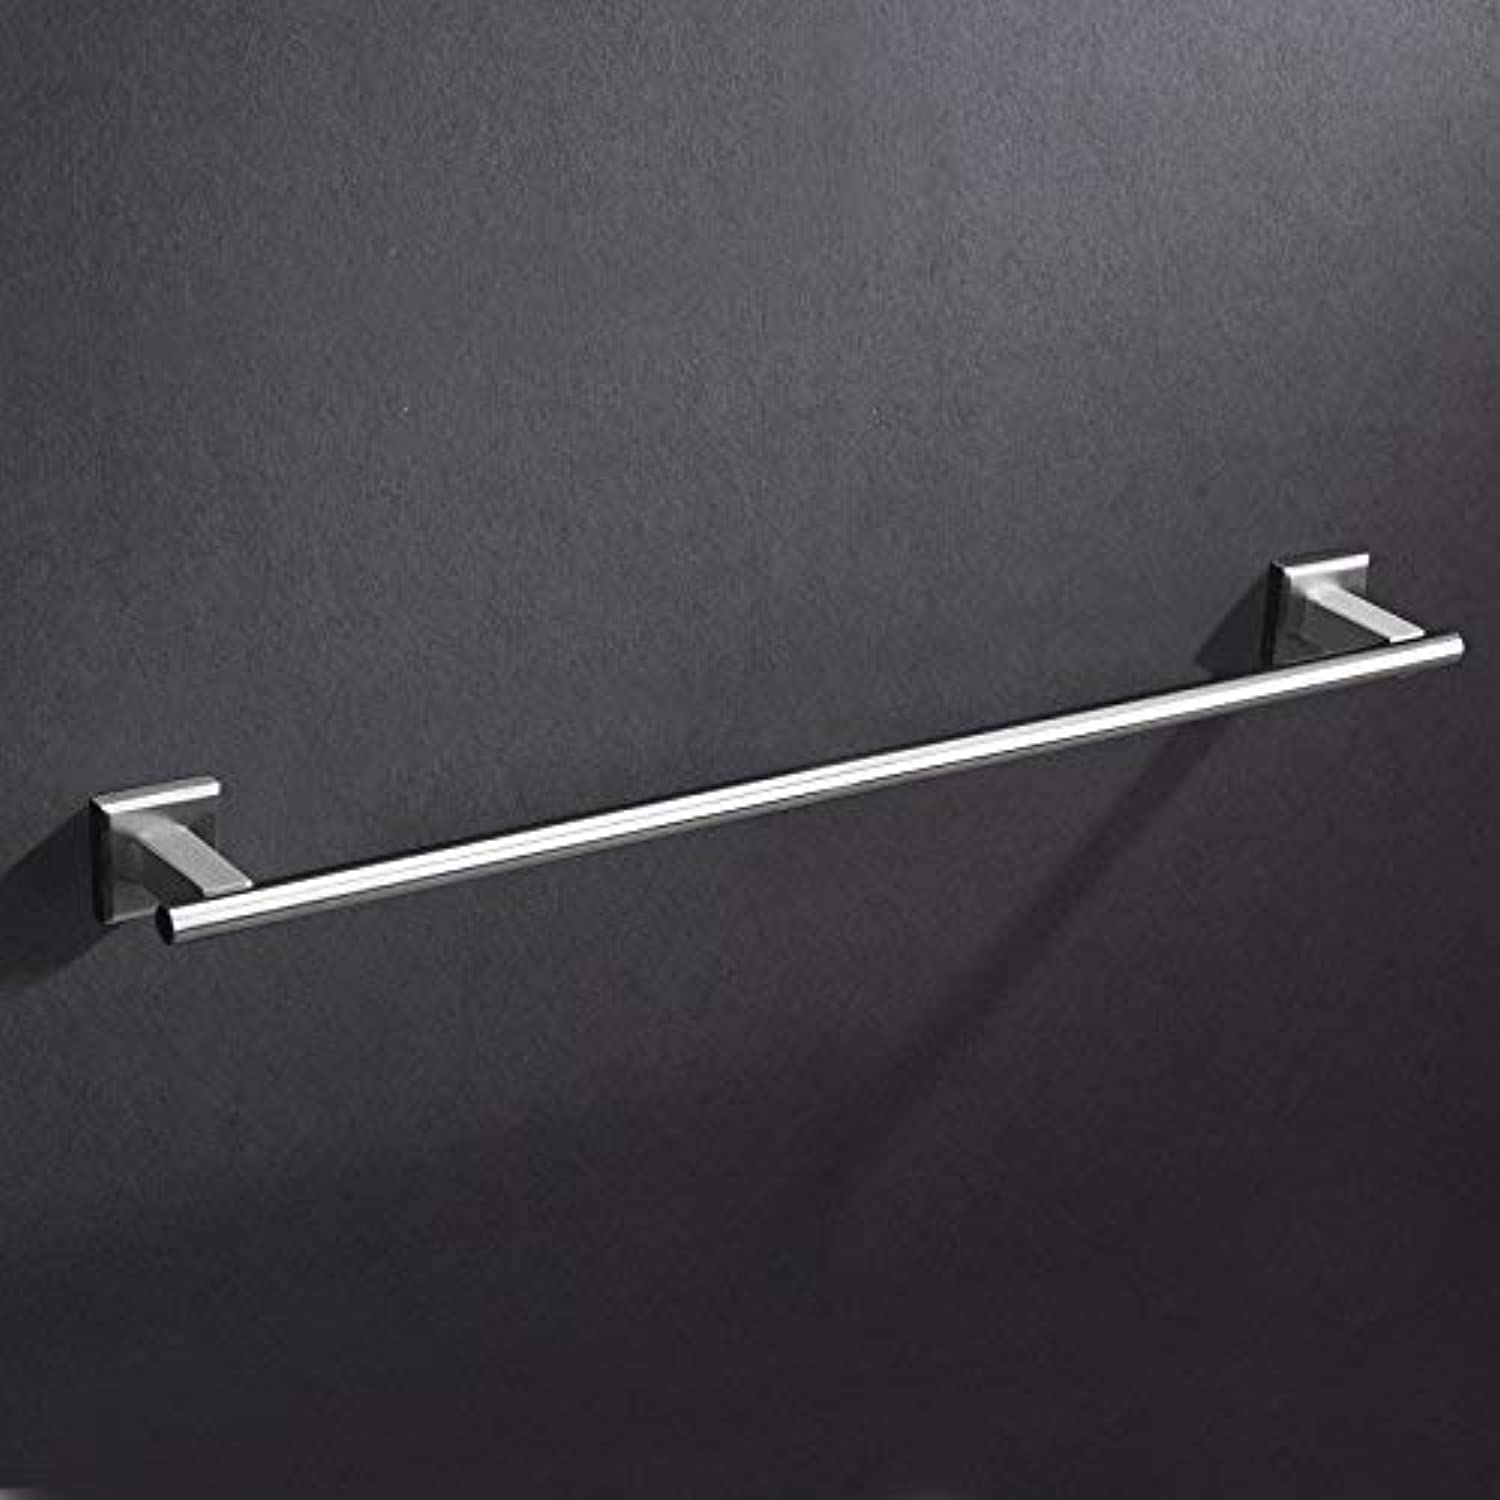 TOWEL RACK HOME Bathroom Sink Basin Tap Brass Mixer Tap Washroom Mixer Faucet Paint basin faucet antioxidant hot and cold full copper bathroom faucet single hole single h